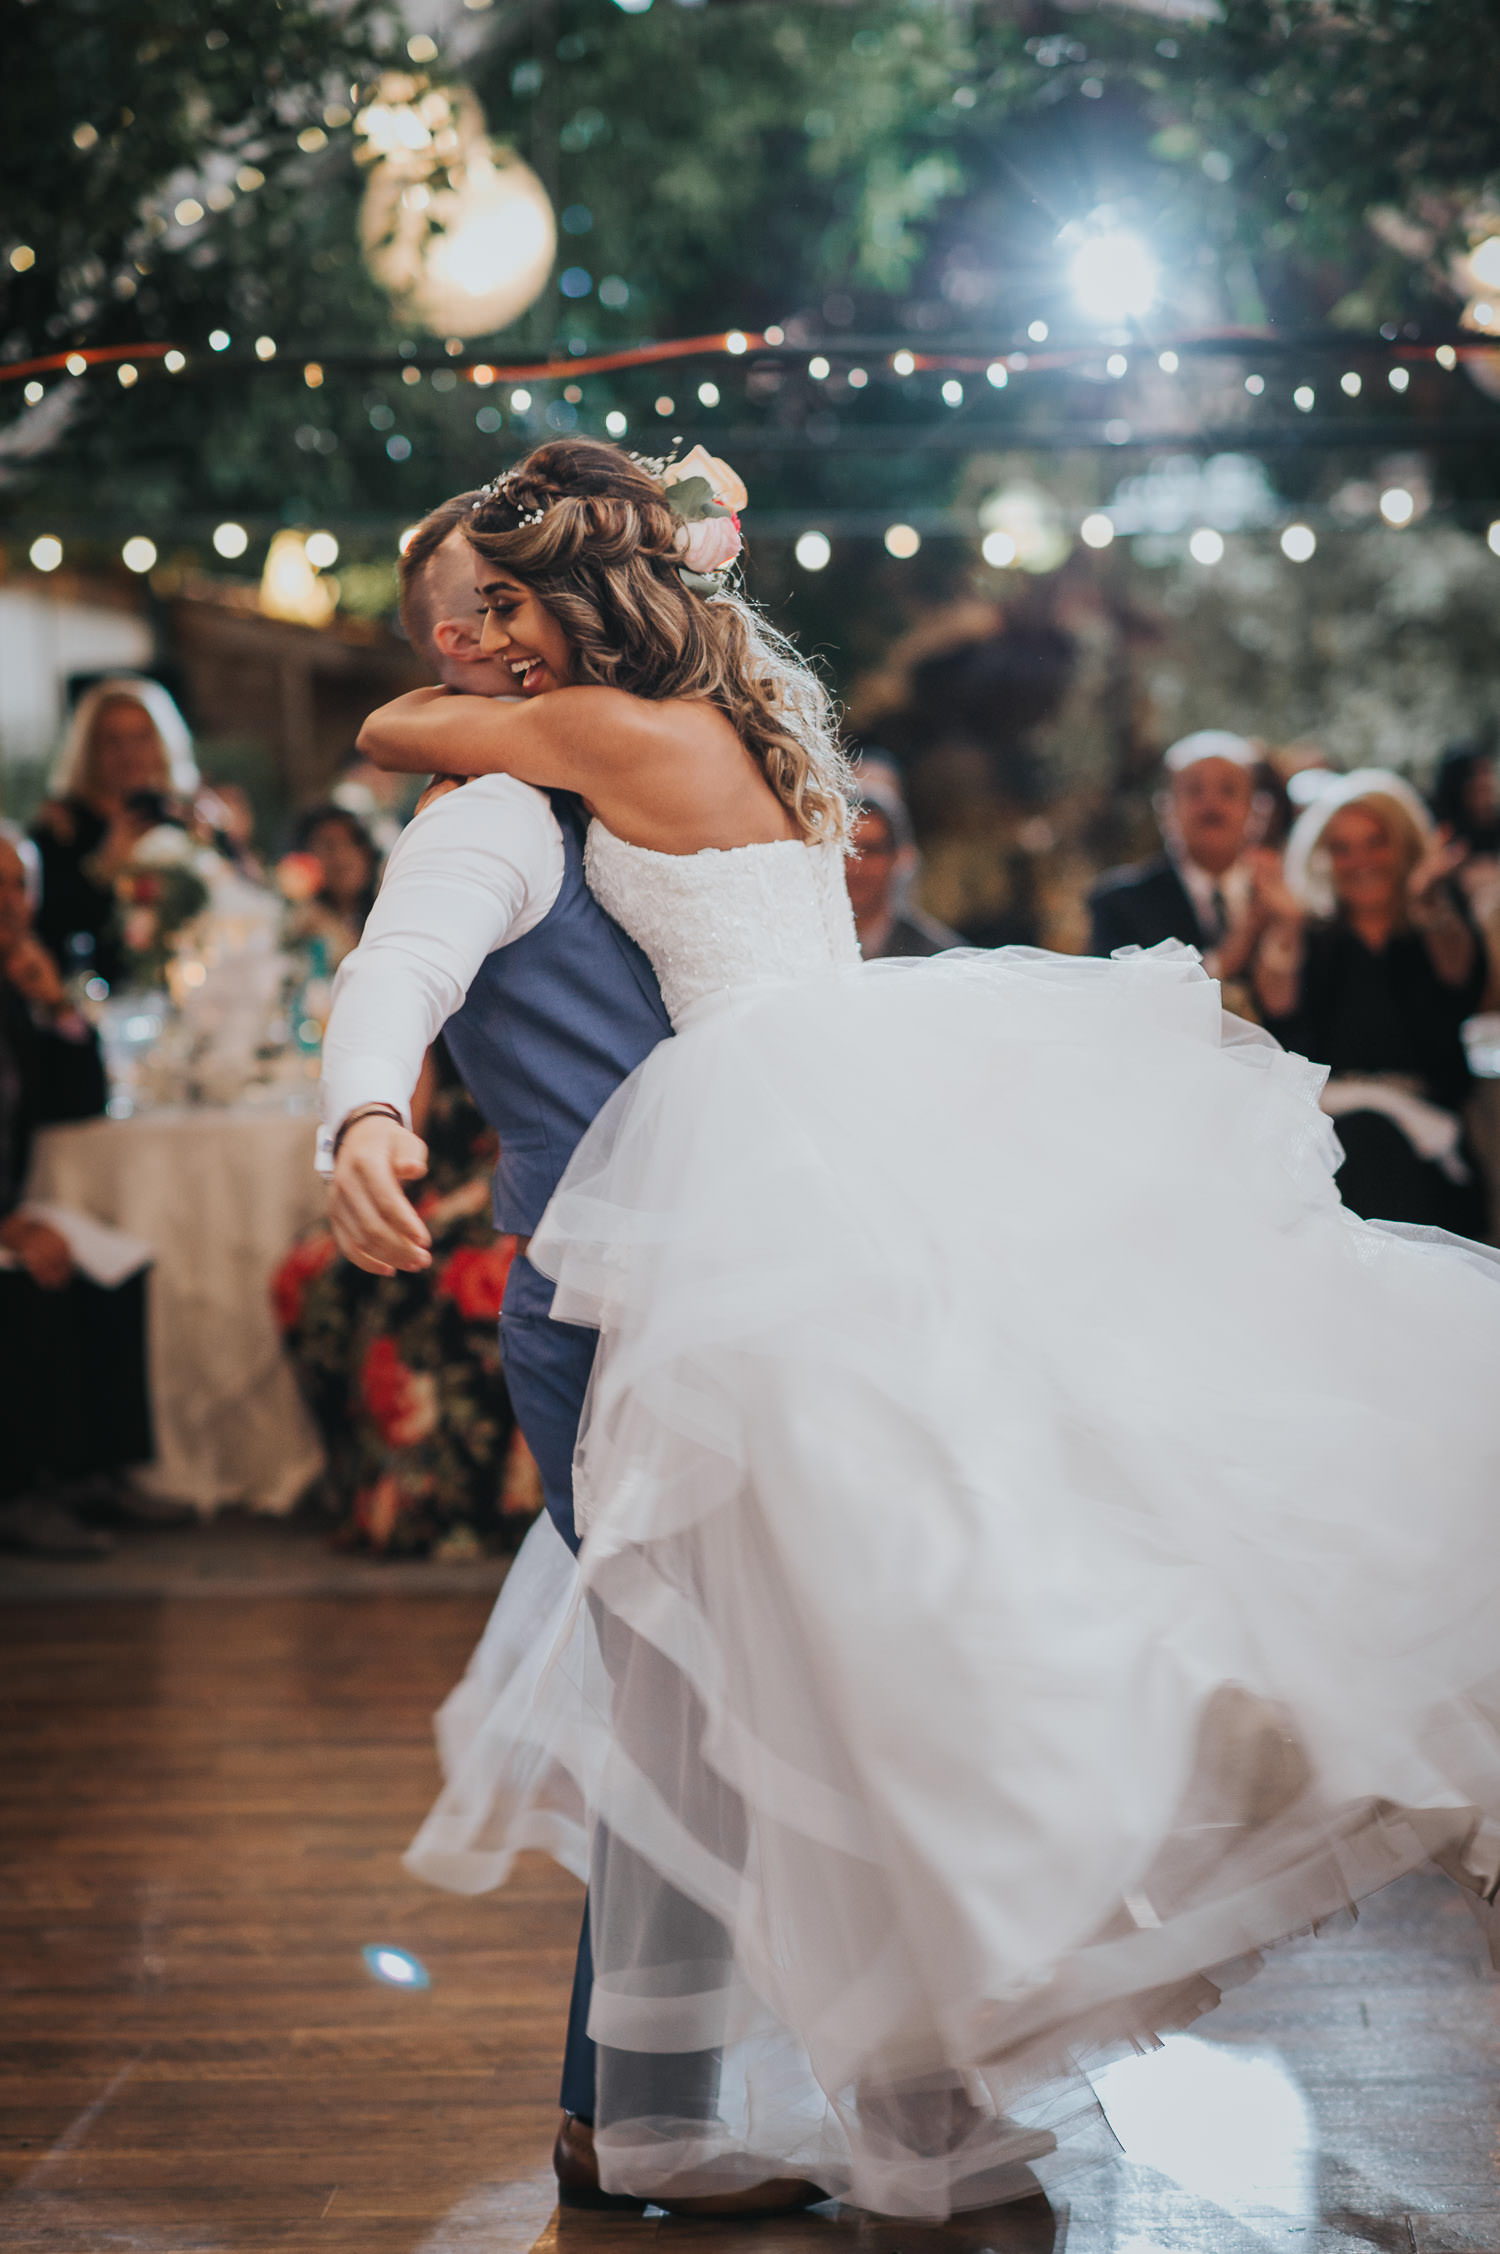 Madsens Greenhouse Wedding Photographer capturing the unbelievable first dance of bride and groom